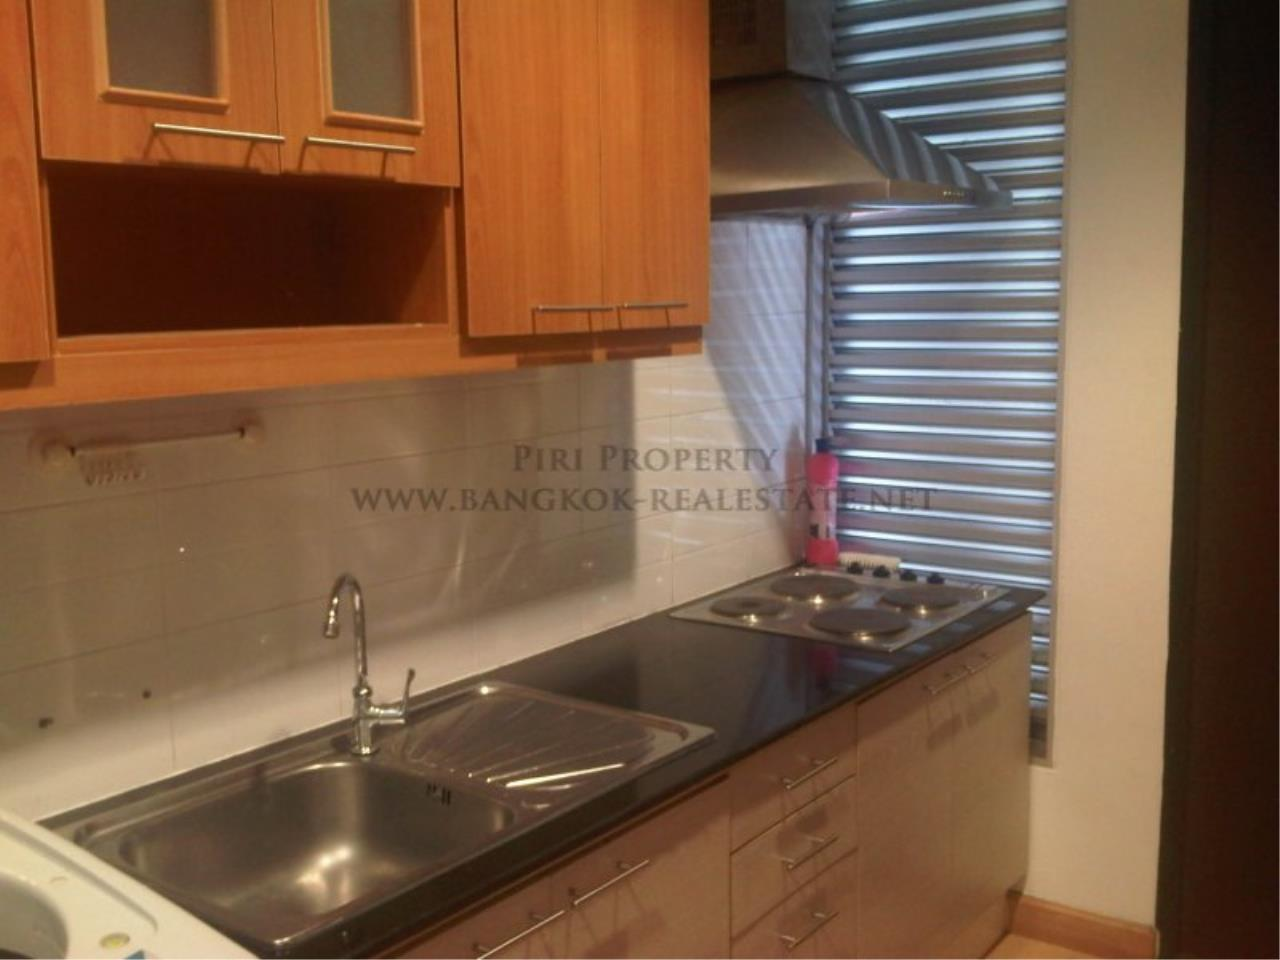 Piri Property Agency's 3 Bedroom Penthouse Unit - AP Citismart for Rent 9